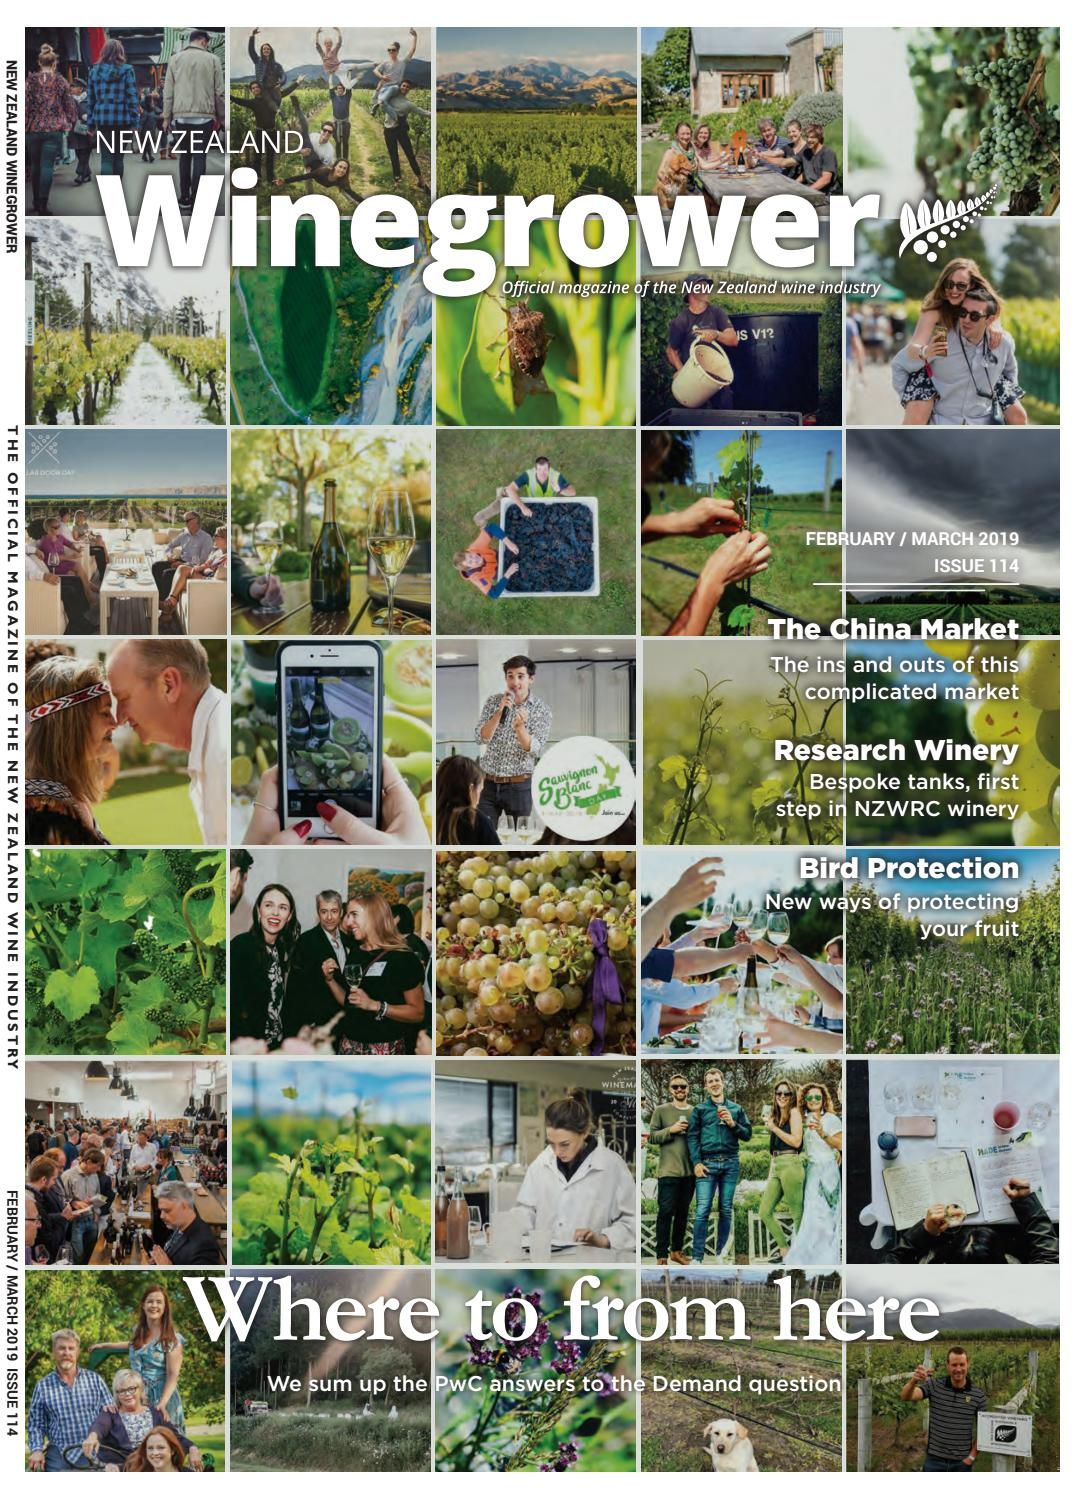 6cef74d10 NZ Winegrower February/March 2019 by Rural News Group - issuu